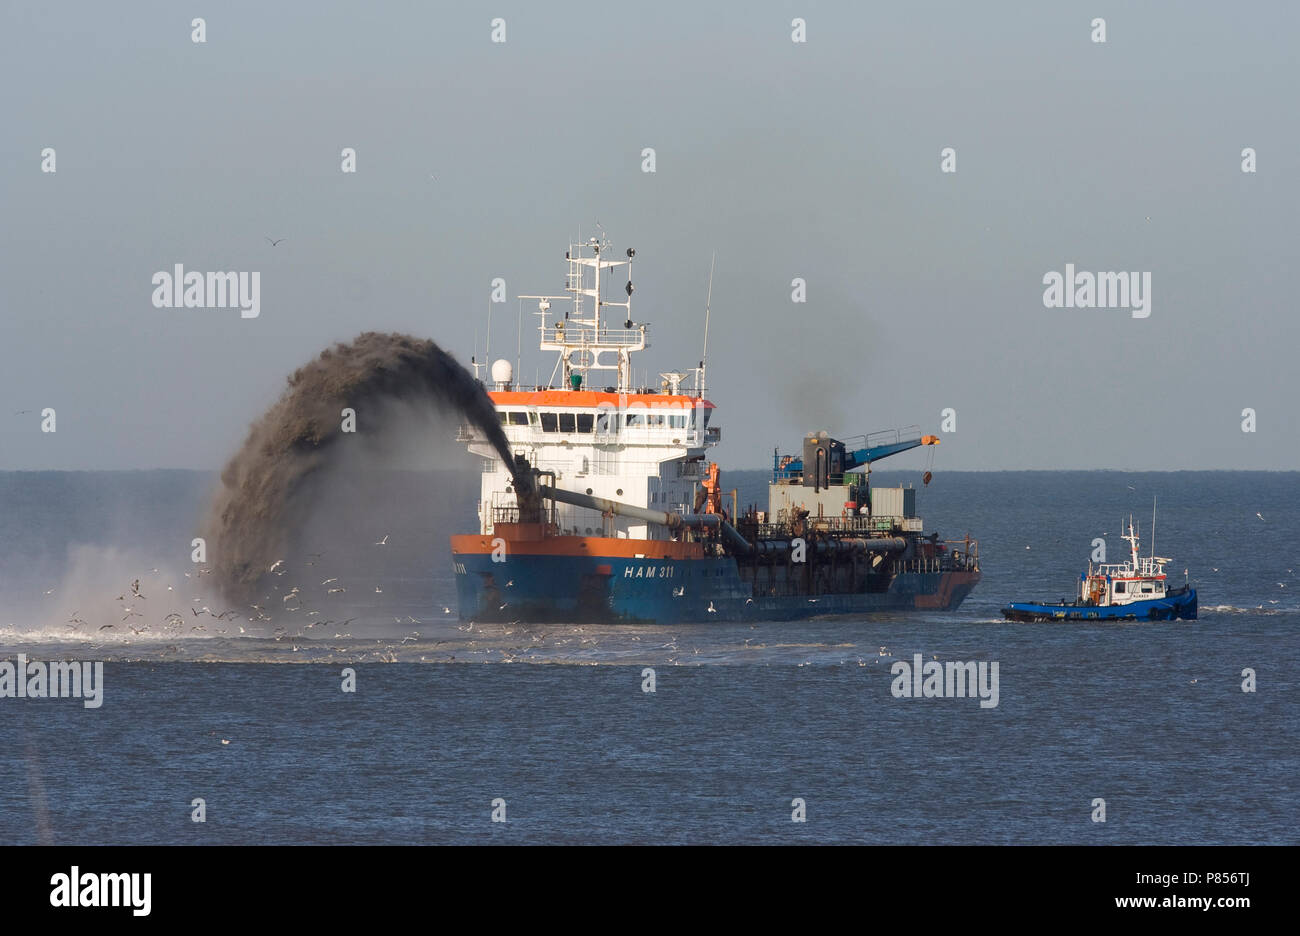 Zand opspuiten Noordzee, sand spraying North Sea - Stock Image